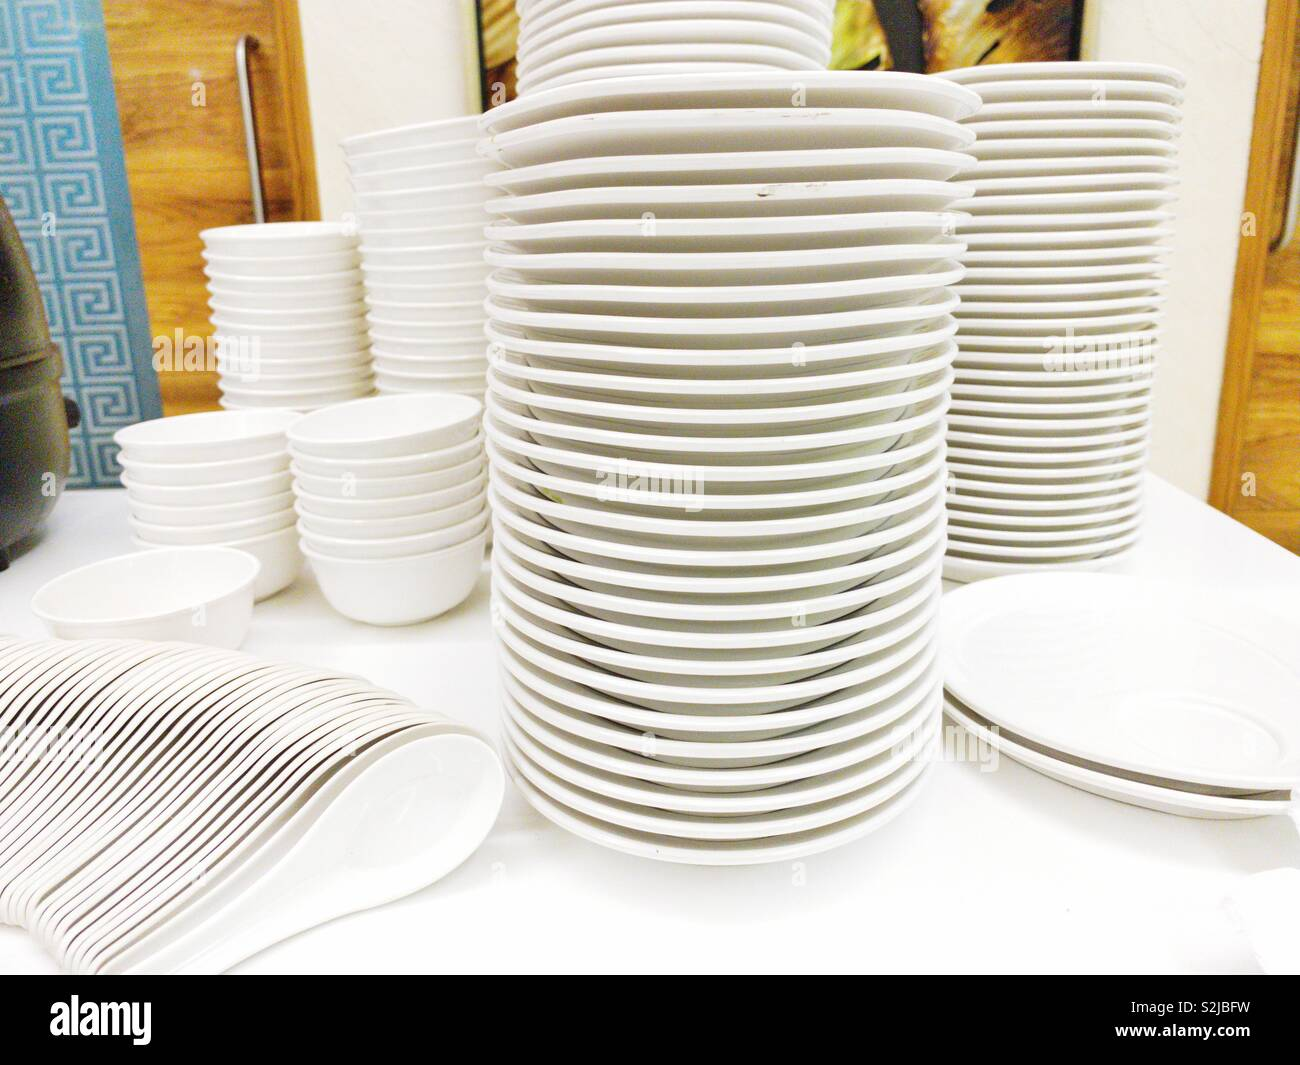 Kitchen things - Stock Image